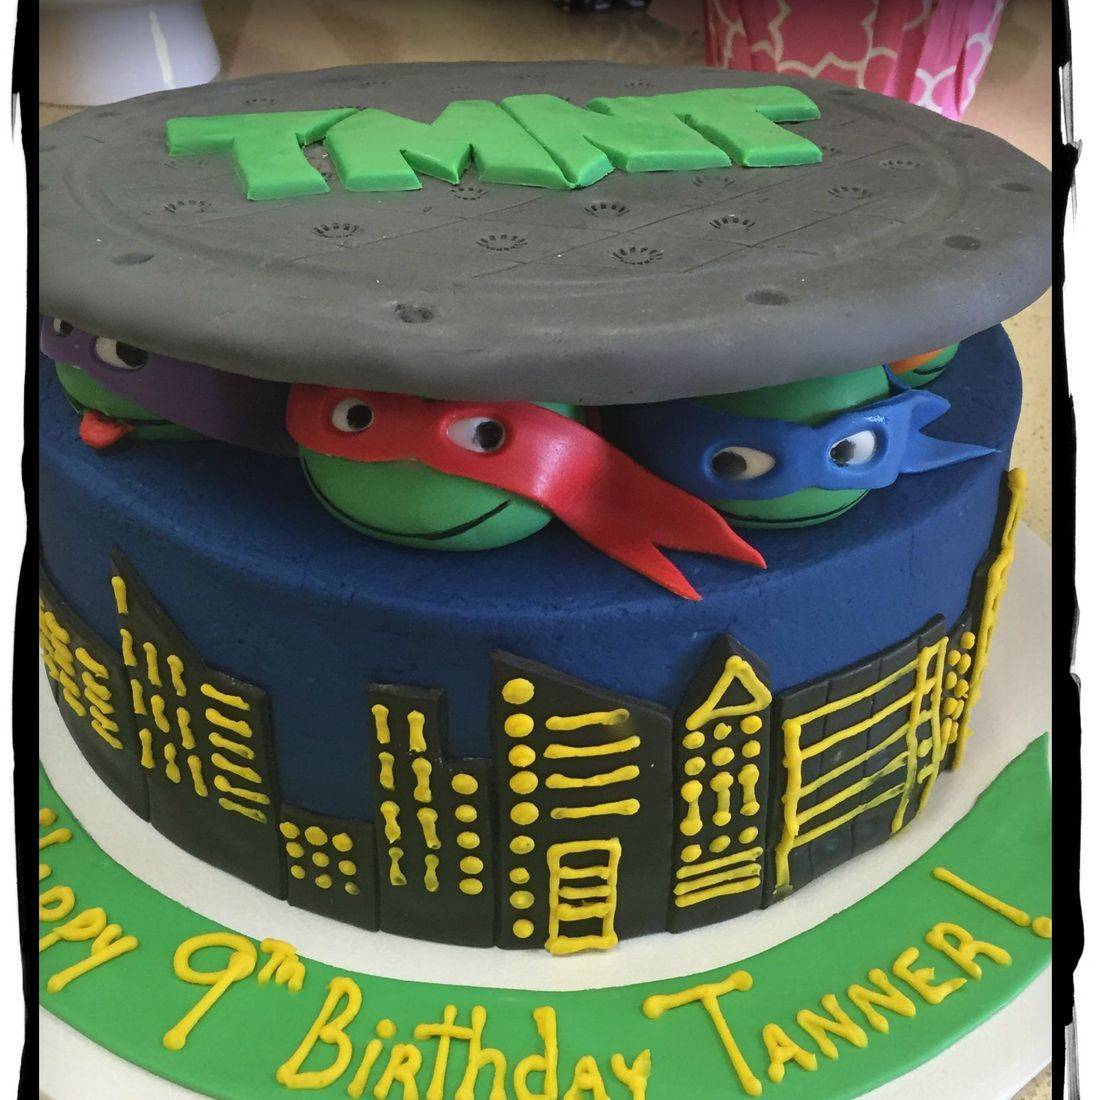 Teenage mutant teenage turtles birthday cake TMNT birthday cake buttercream